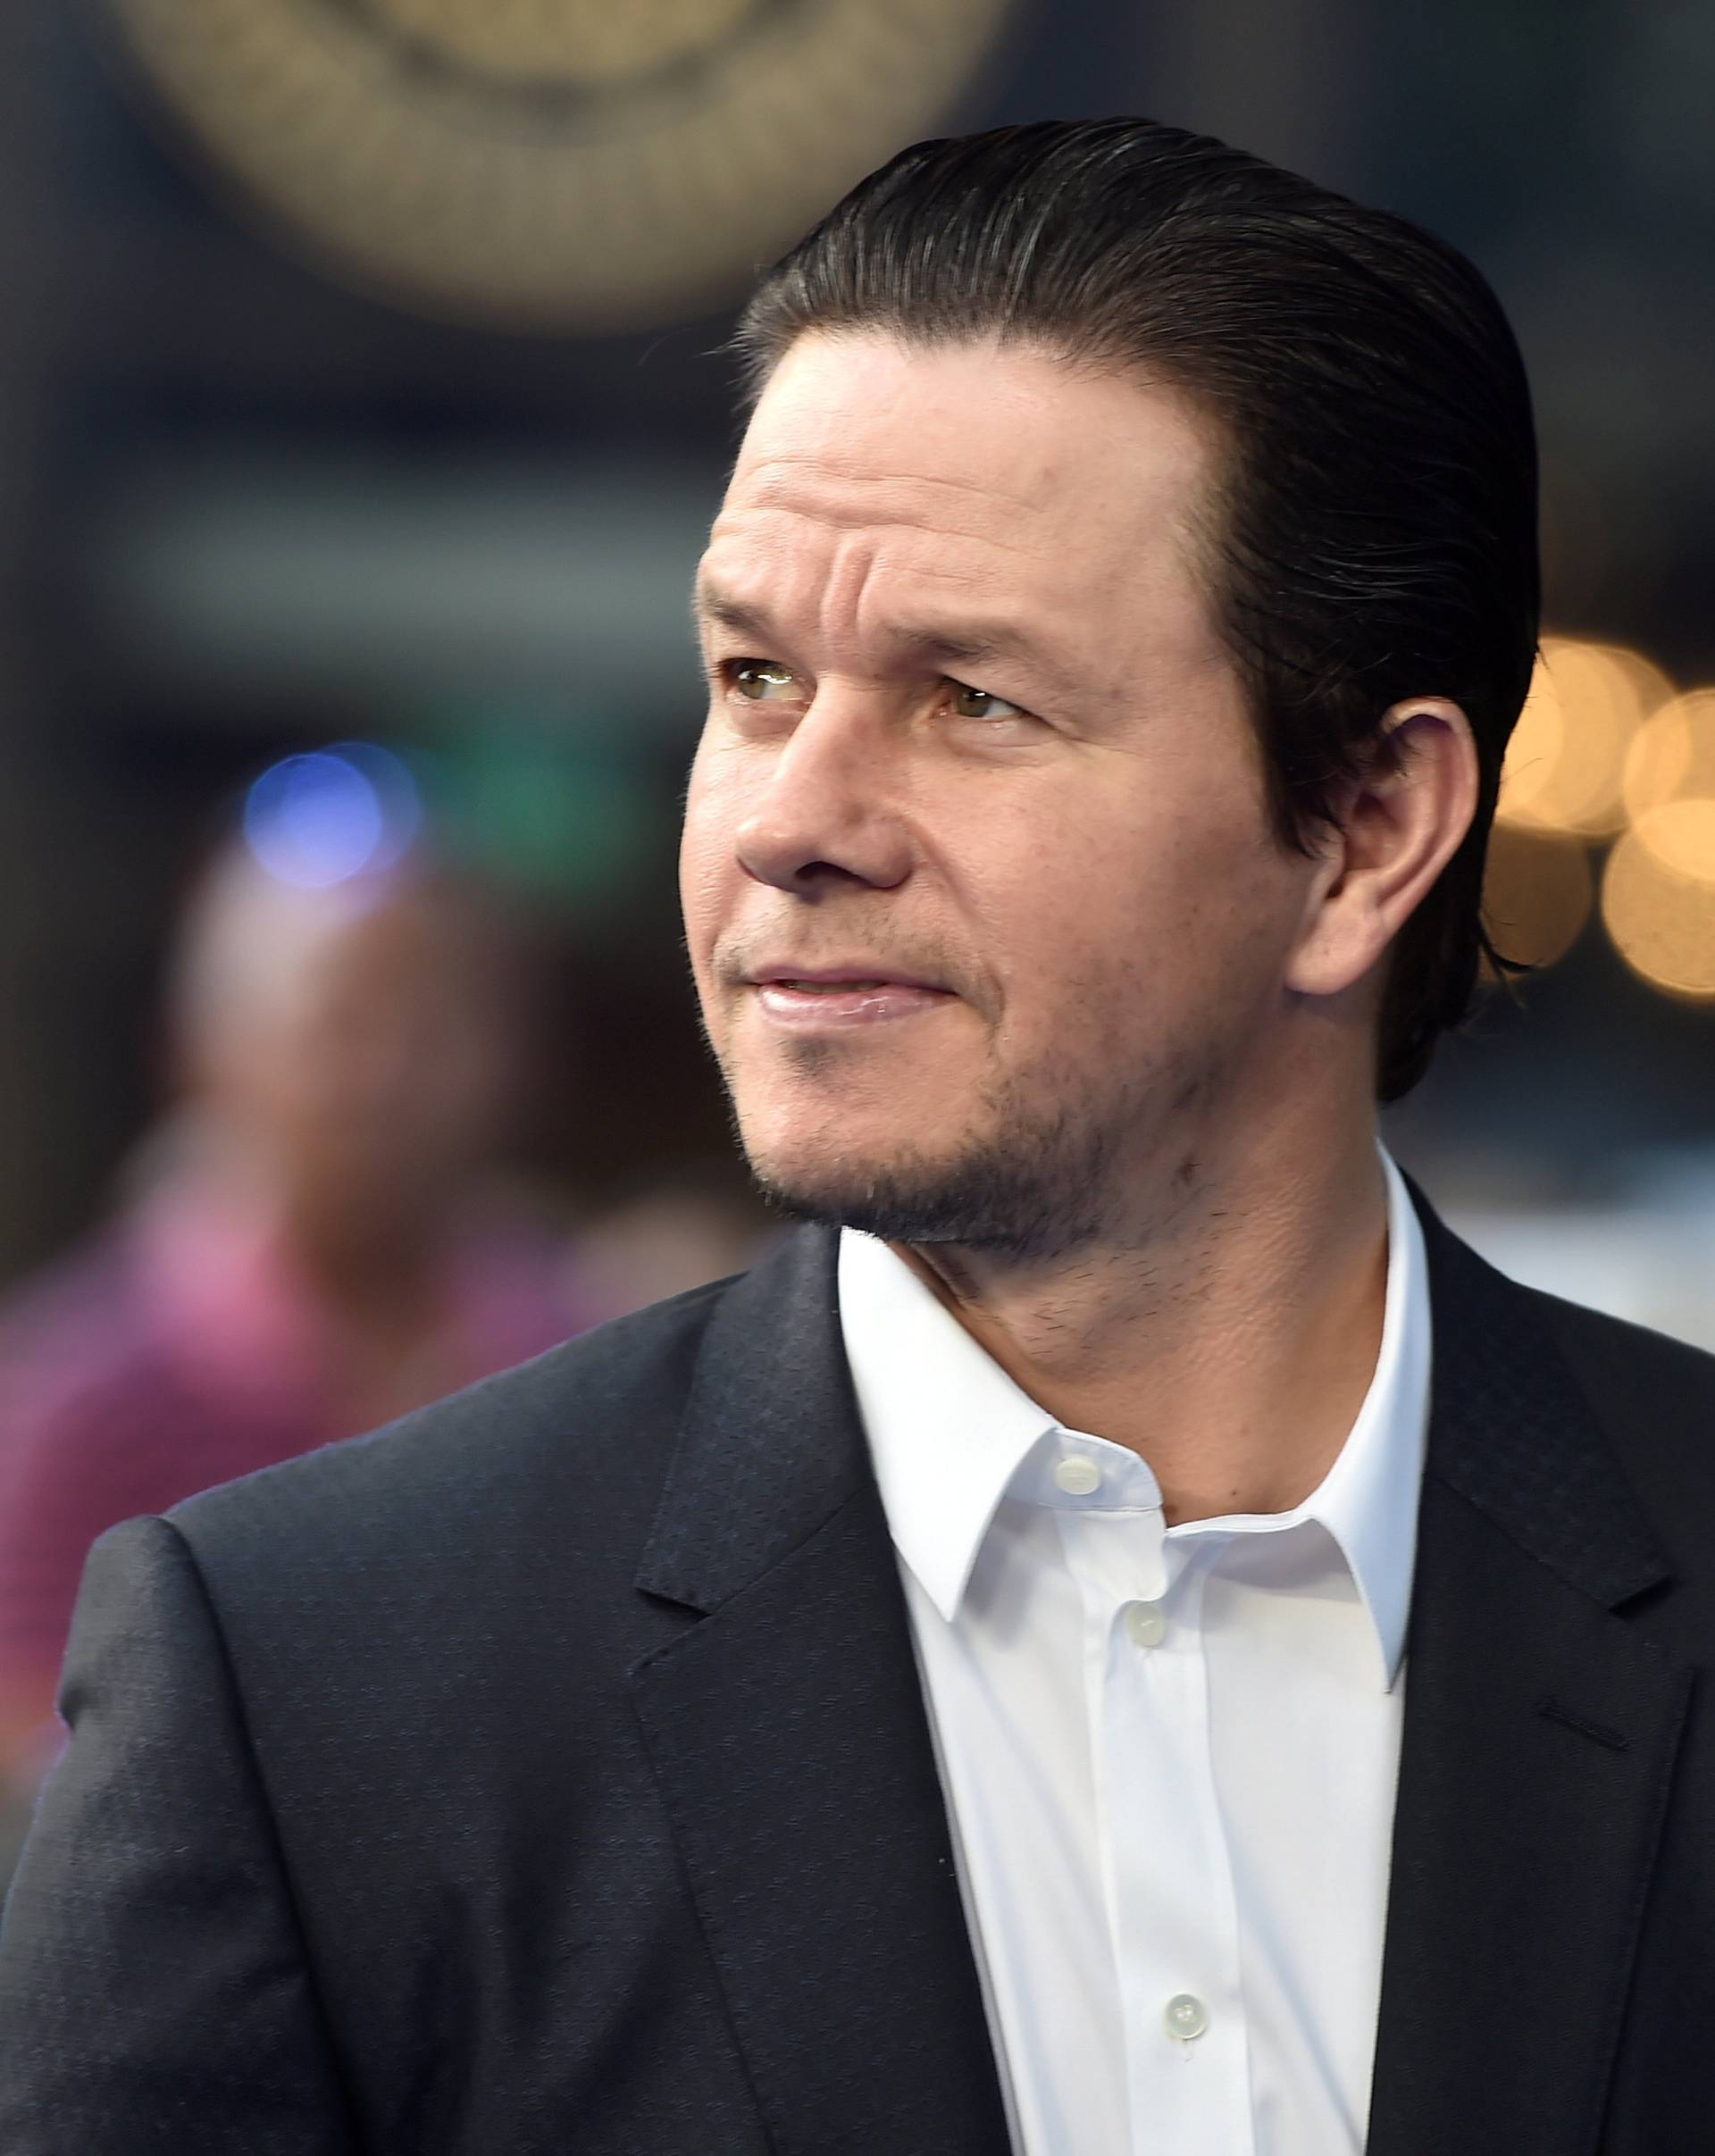 FILE PHOTO: Wahlberg arrives for world premiere of Transfomers, The Last Night, at a cinema in central London